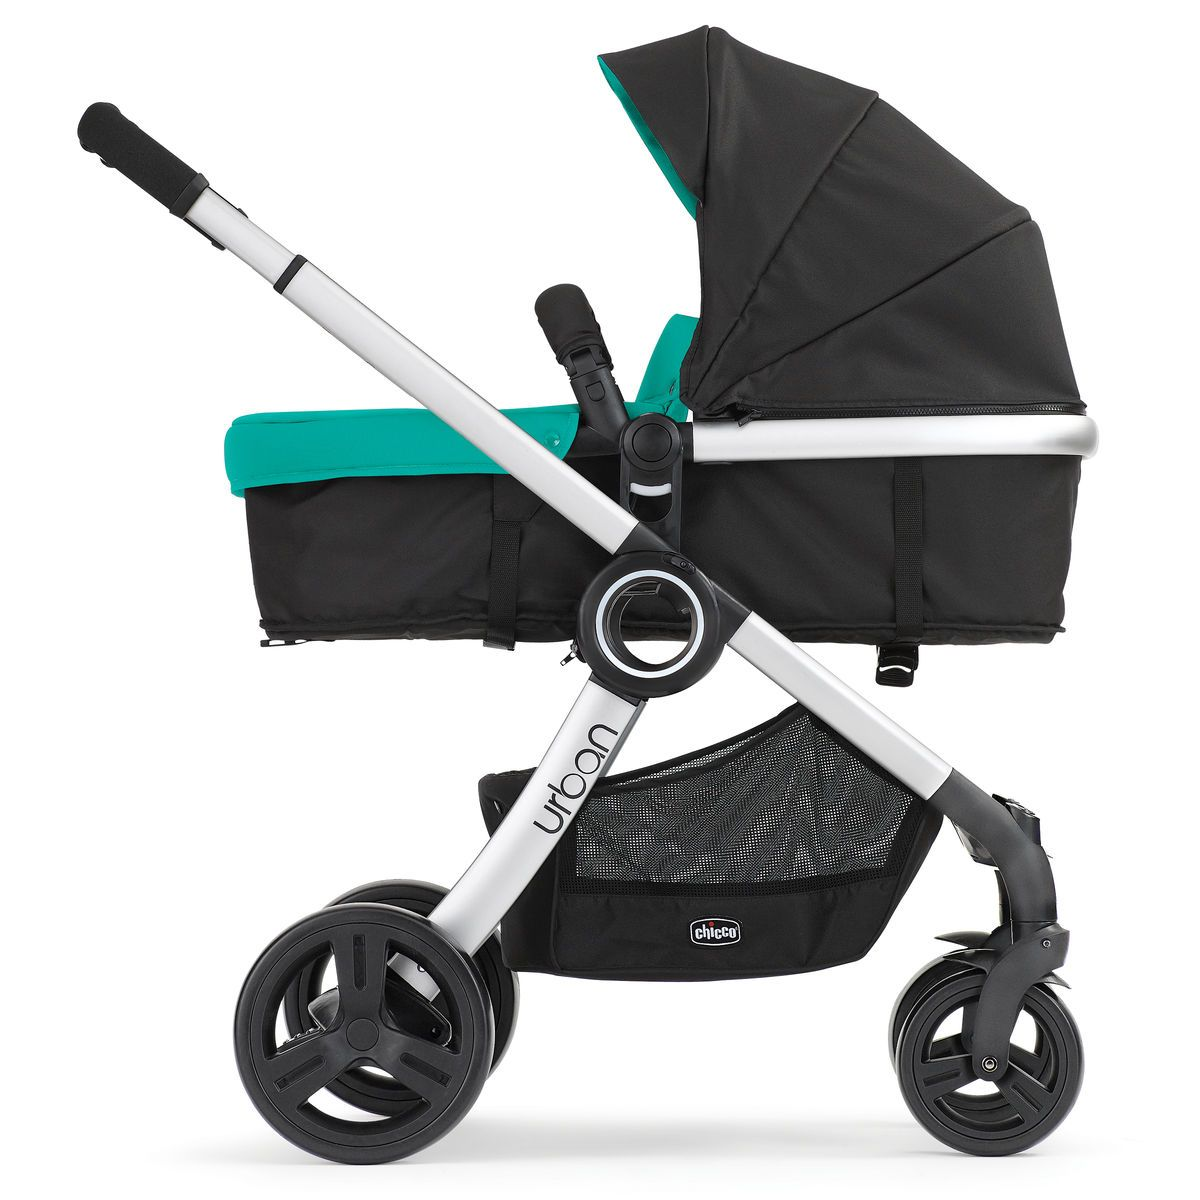 Chicco Urban 6in1 Modular Stroller 400 Chicco urban